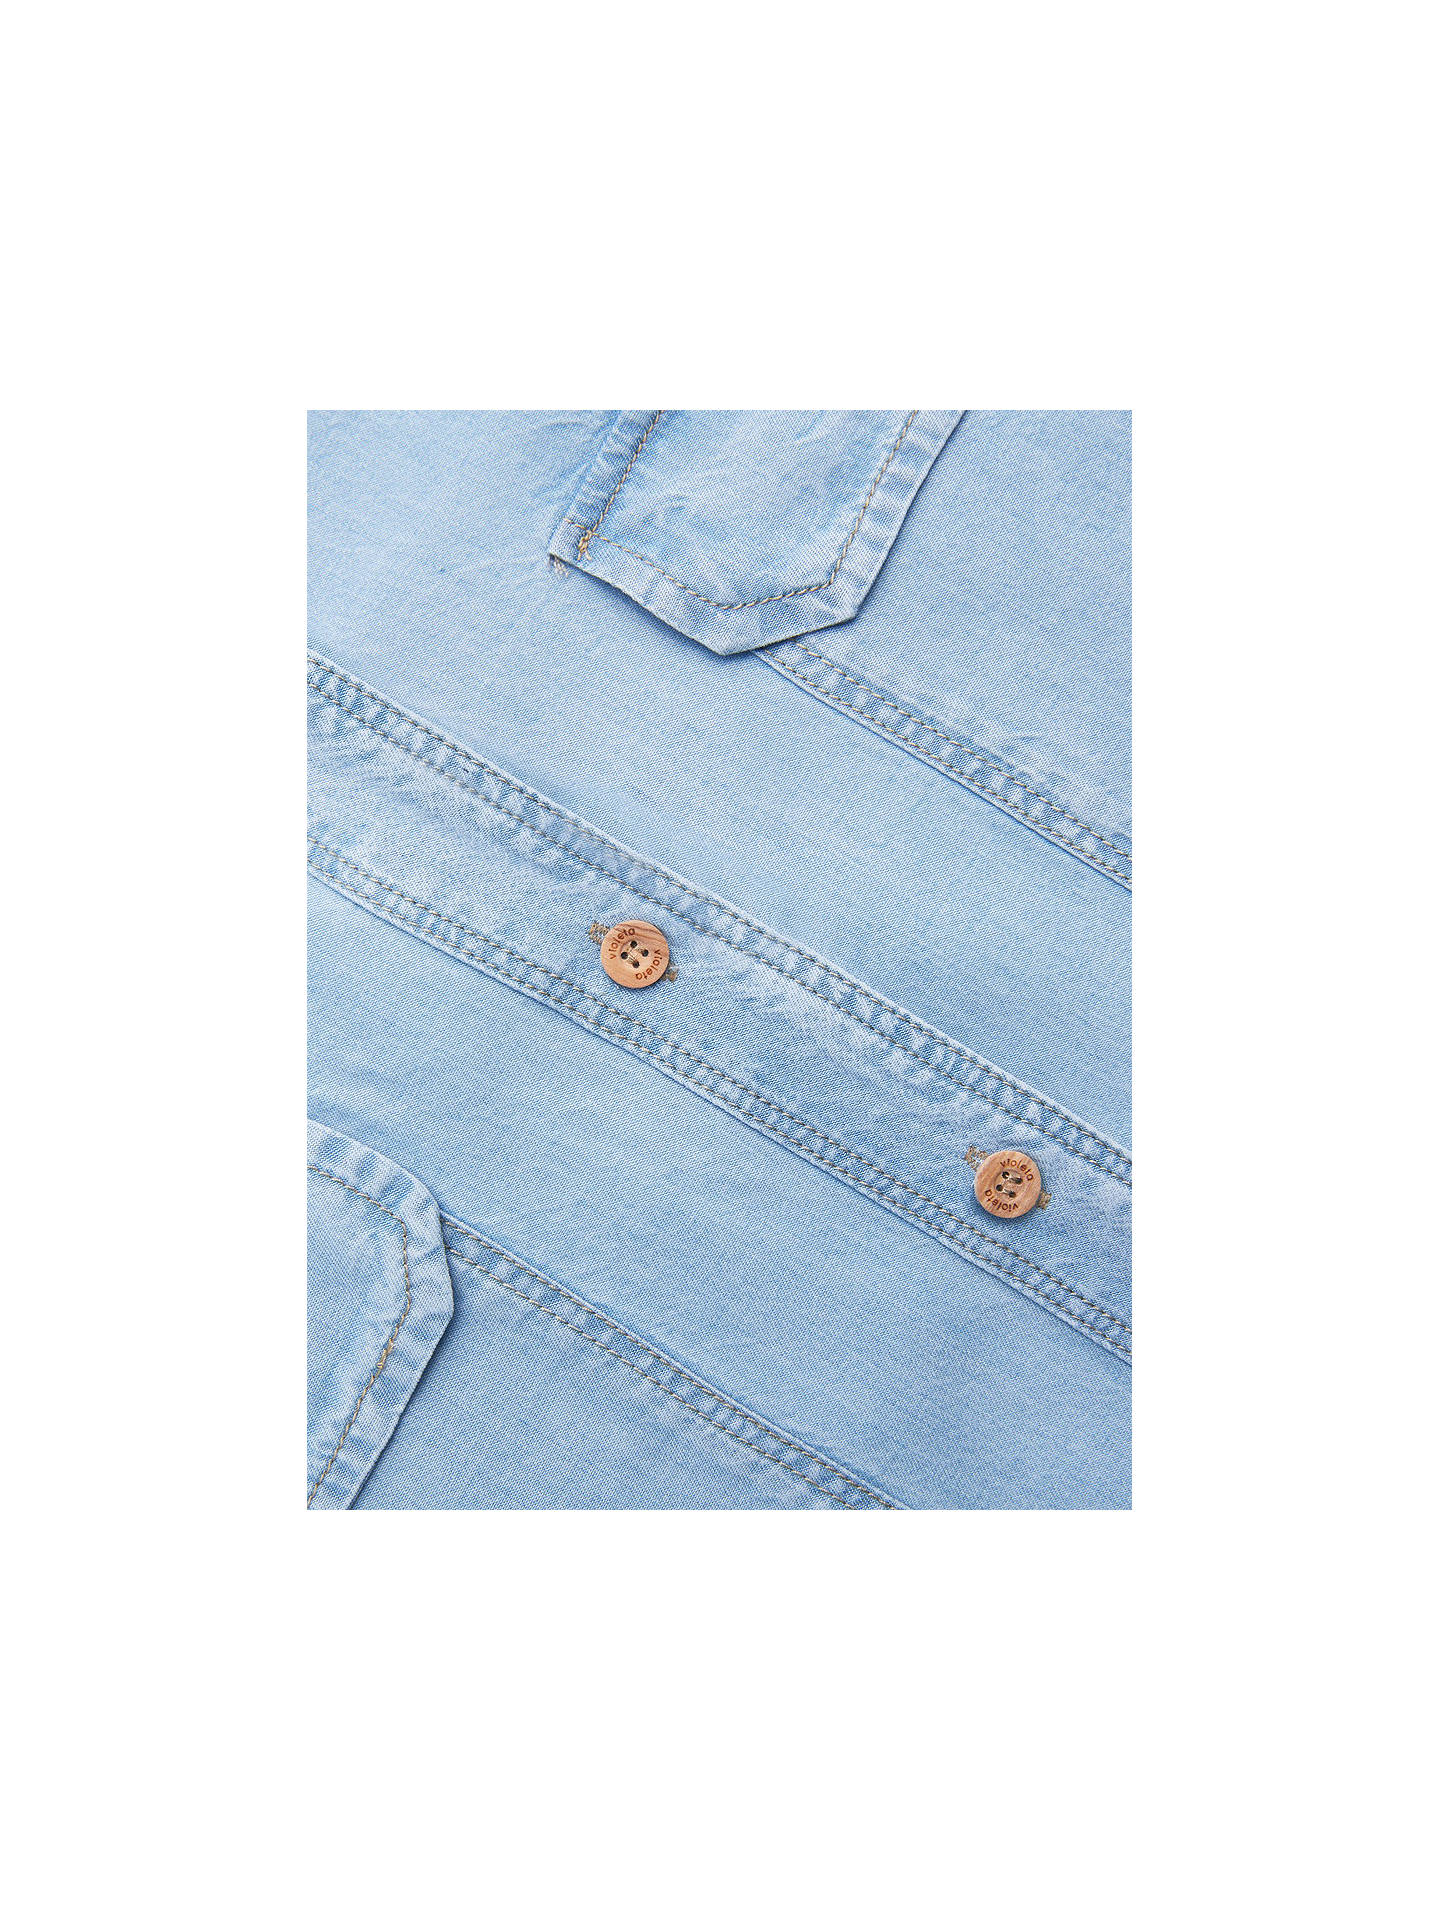 BuyVioleta by Mango Bleached Denim Shirt, Light Blue, 14 Online at johnlewis.com